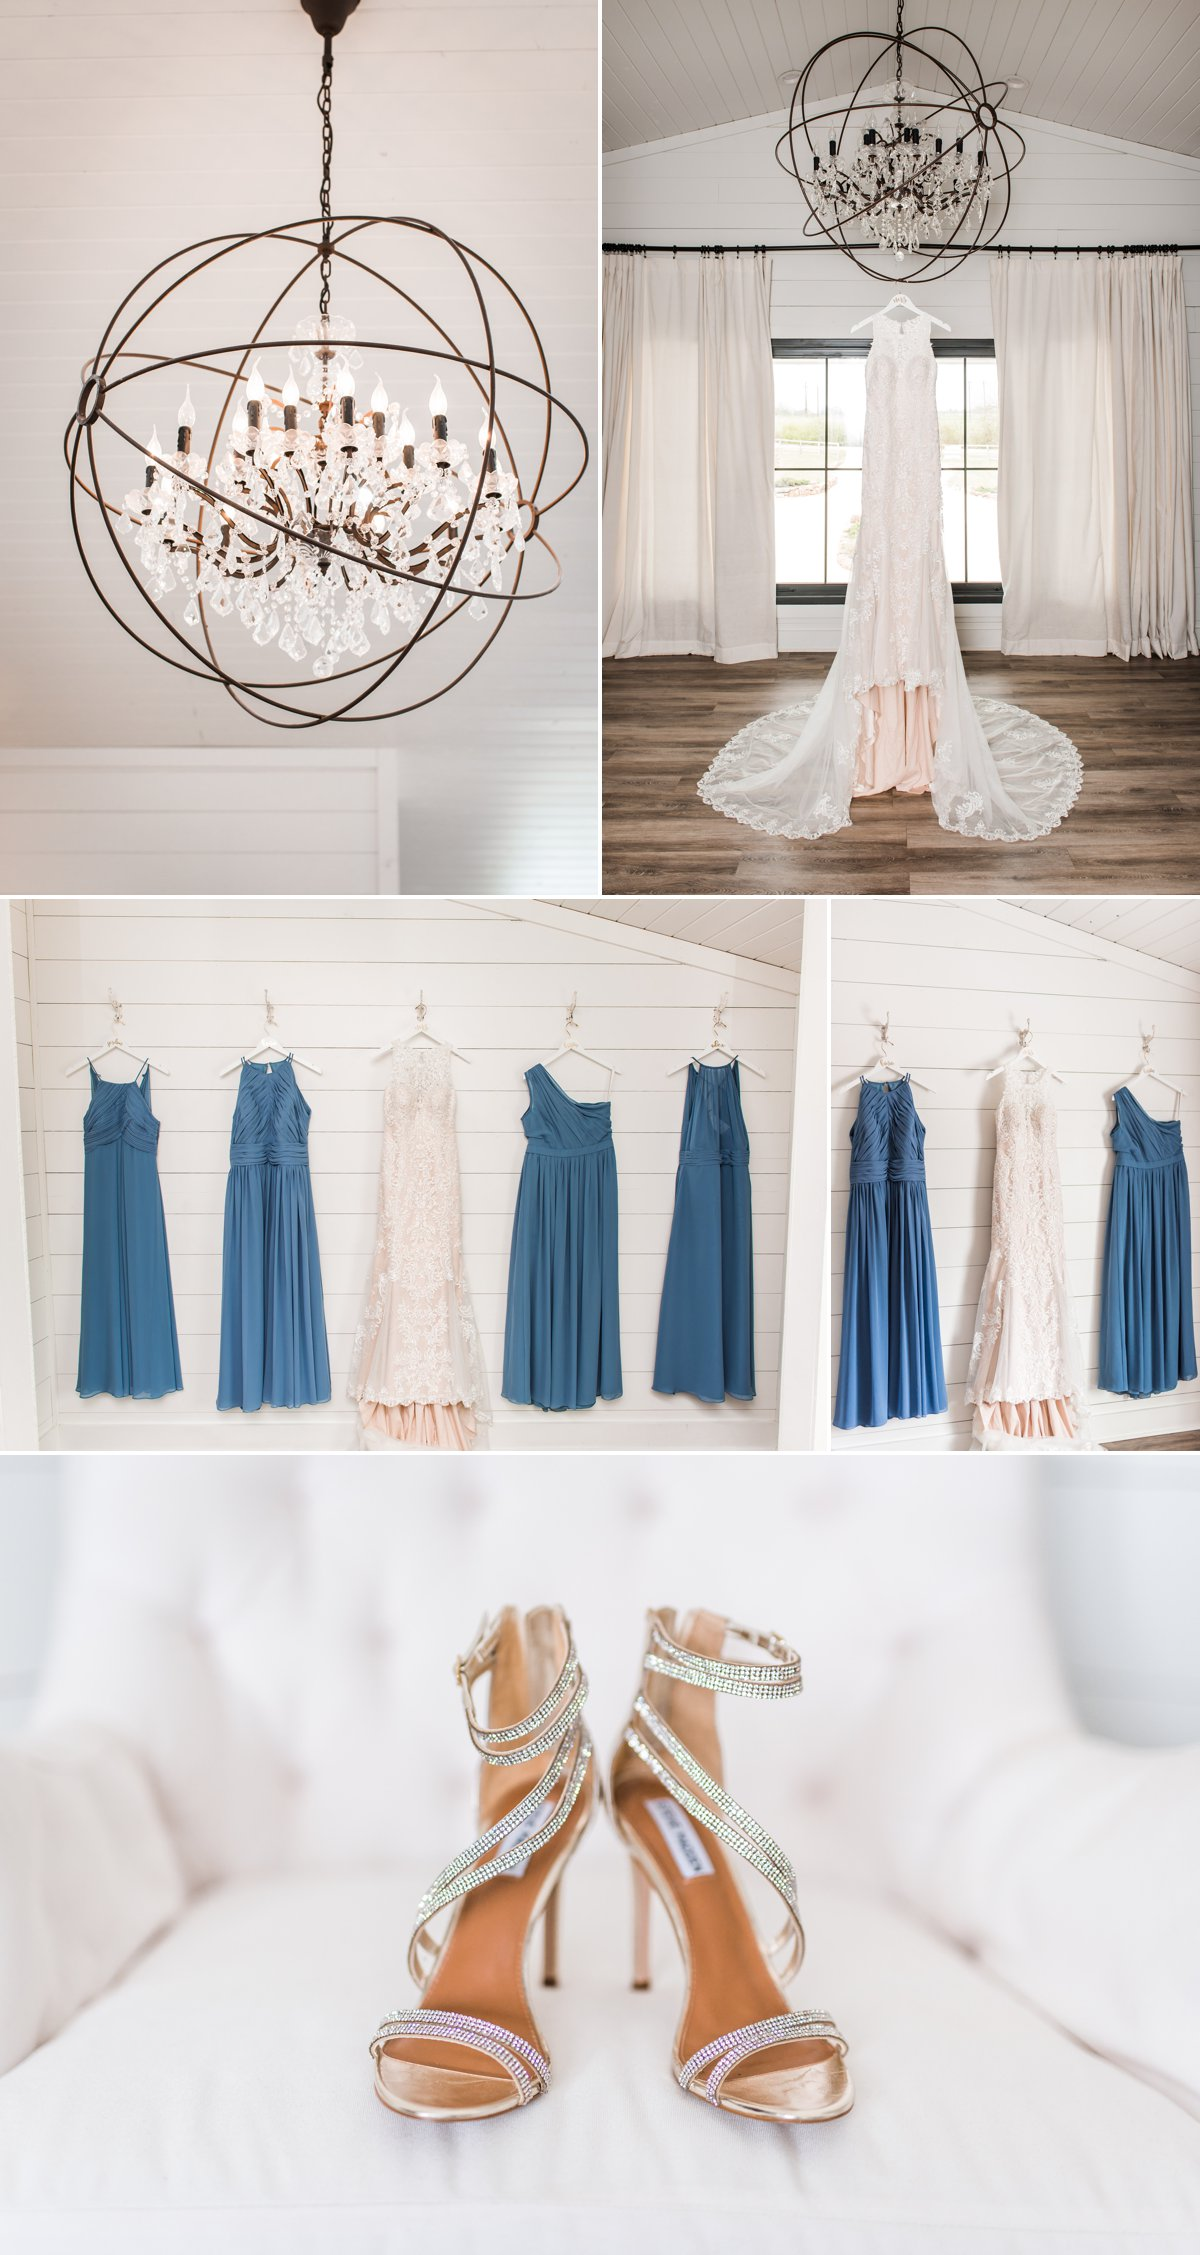 The Farmhouse Wedding Venue Wedding Dress Details